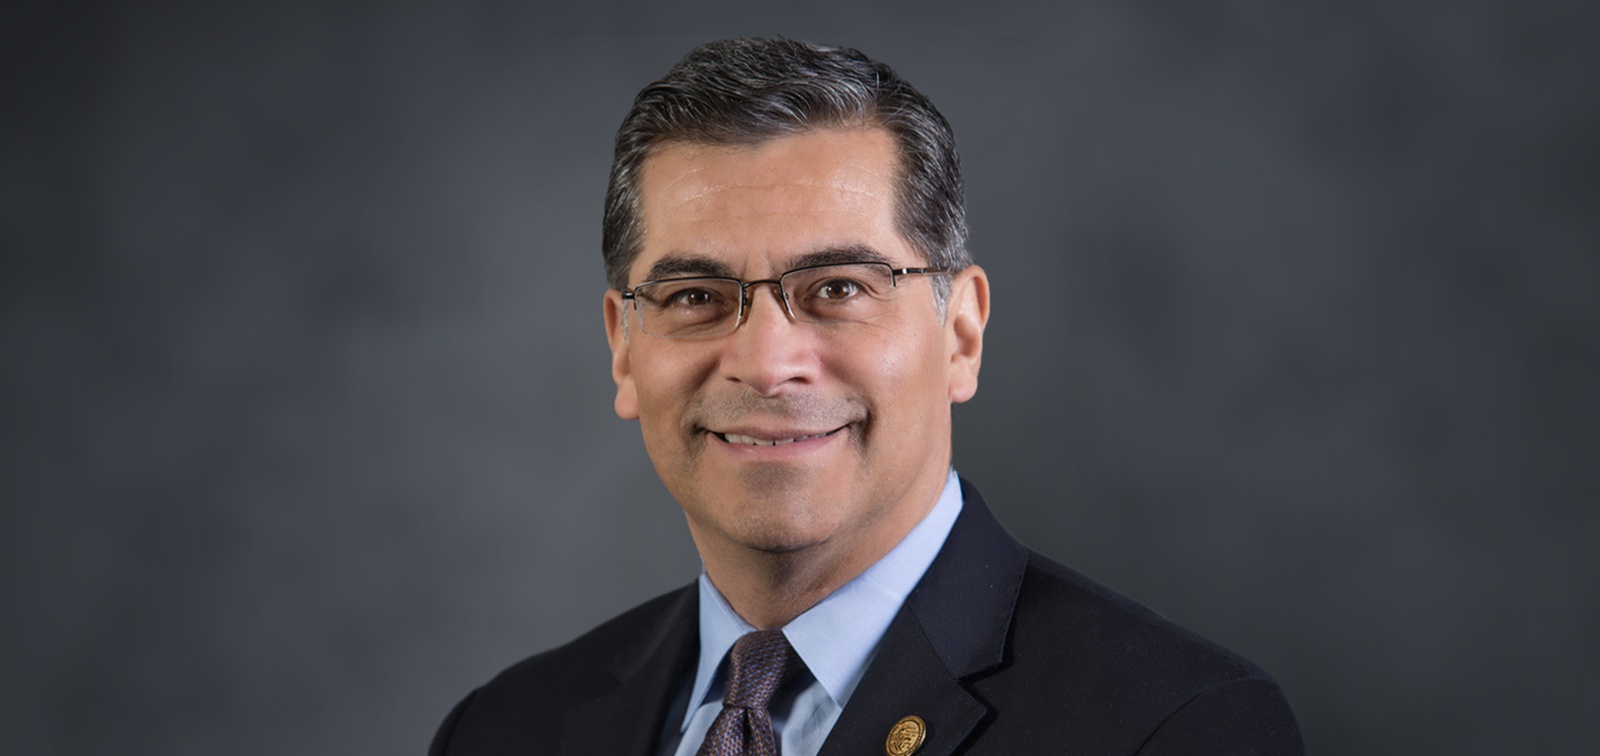 How might Xavier Becerra operate as HHS Secretary?